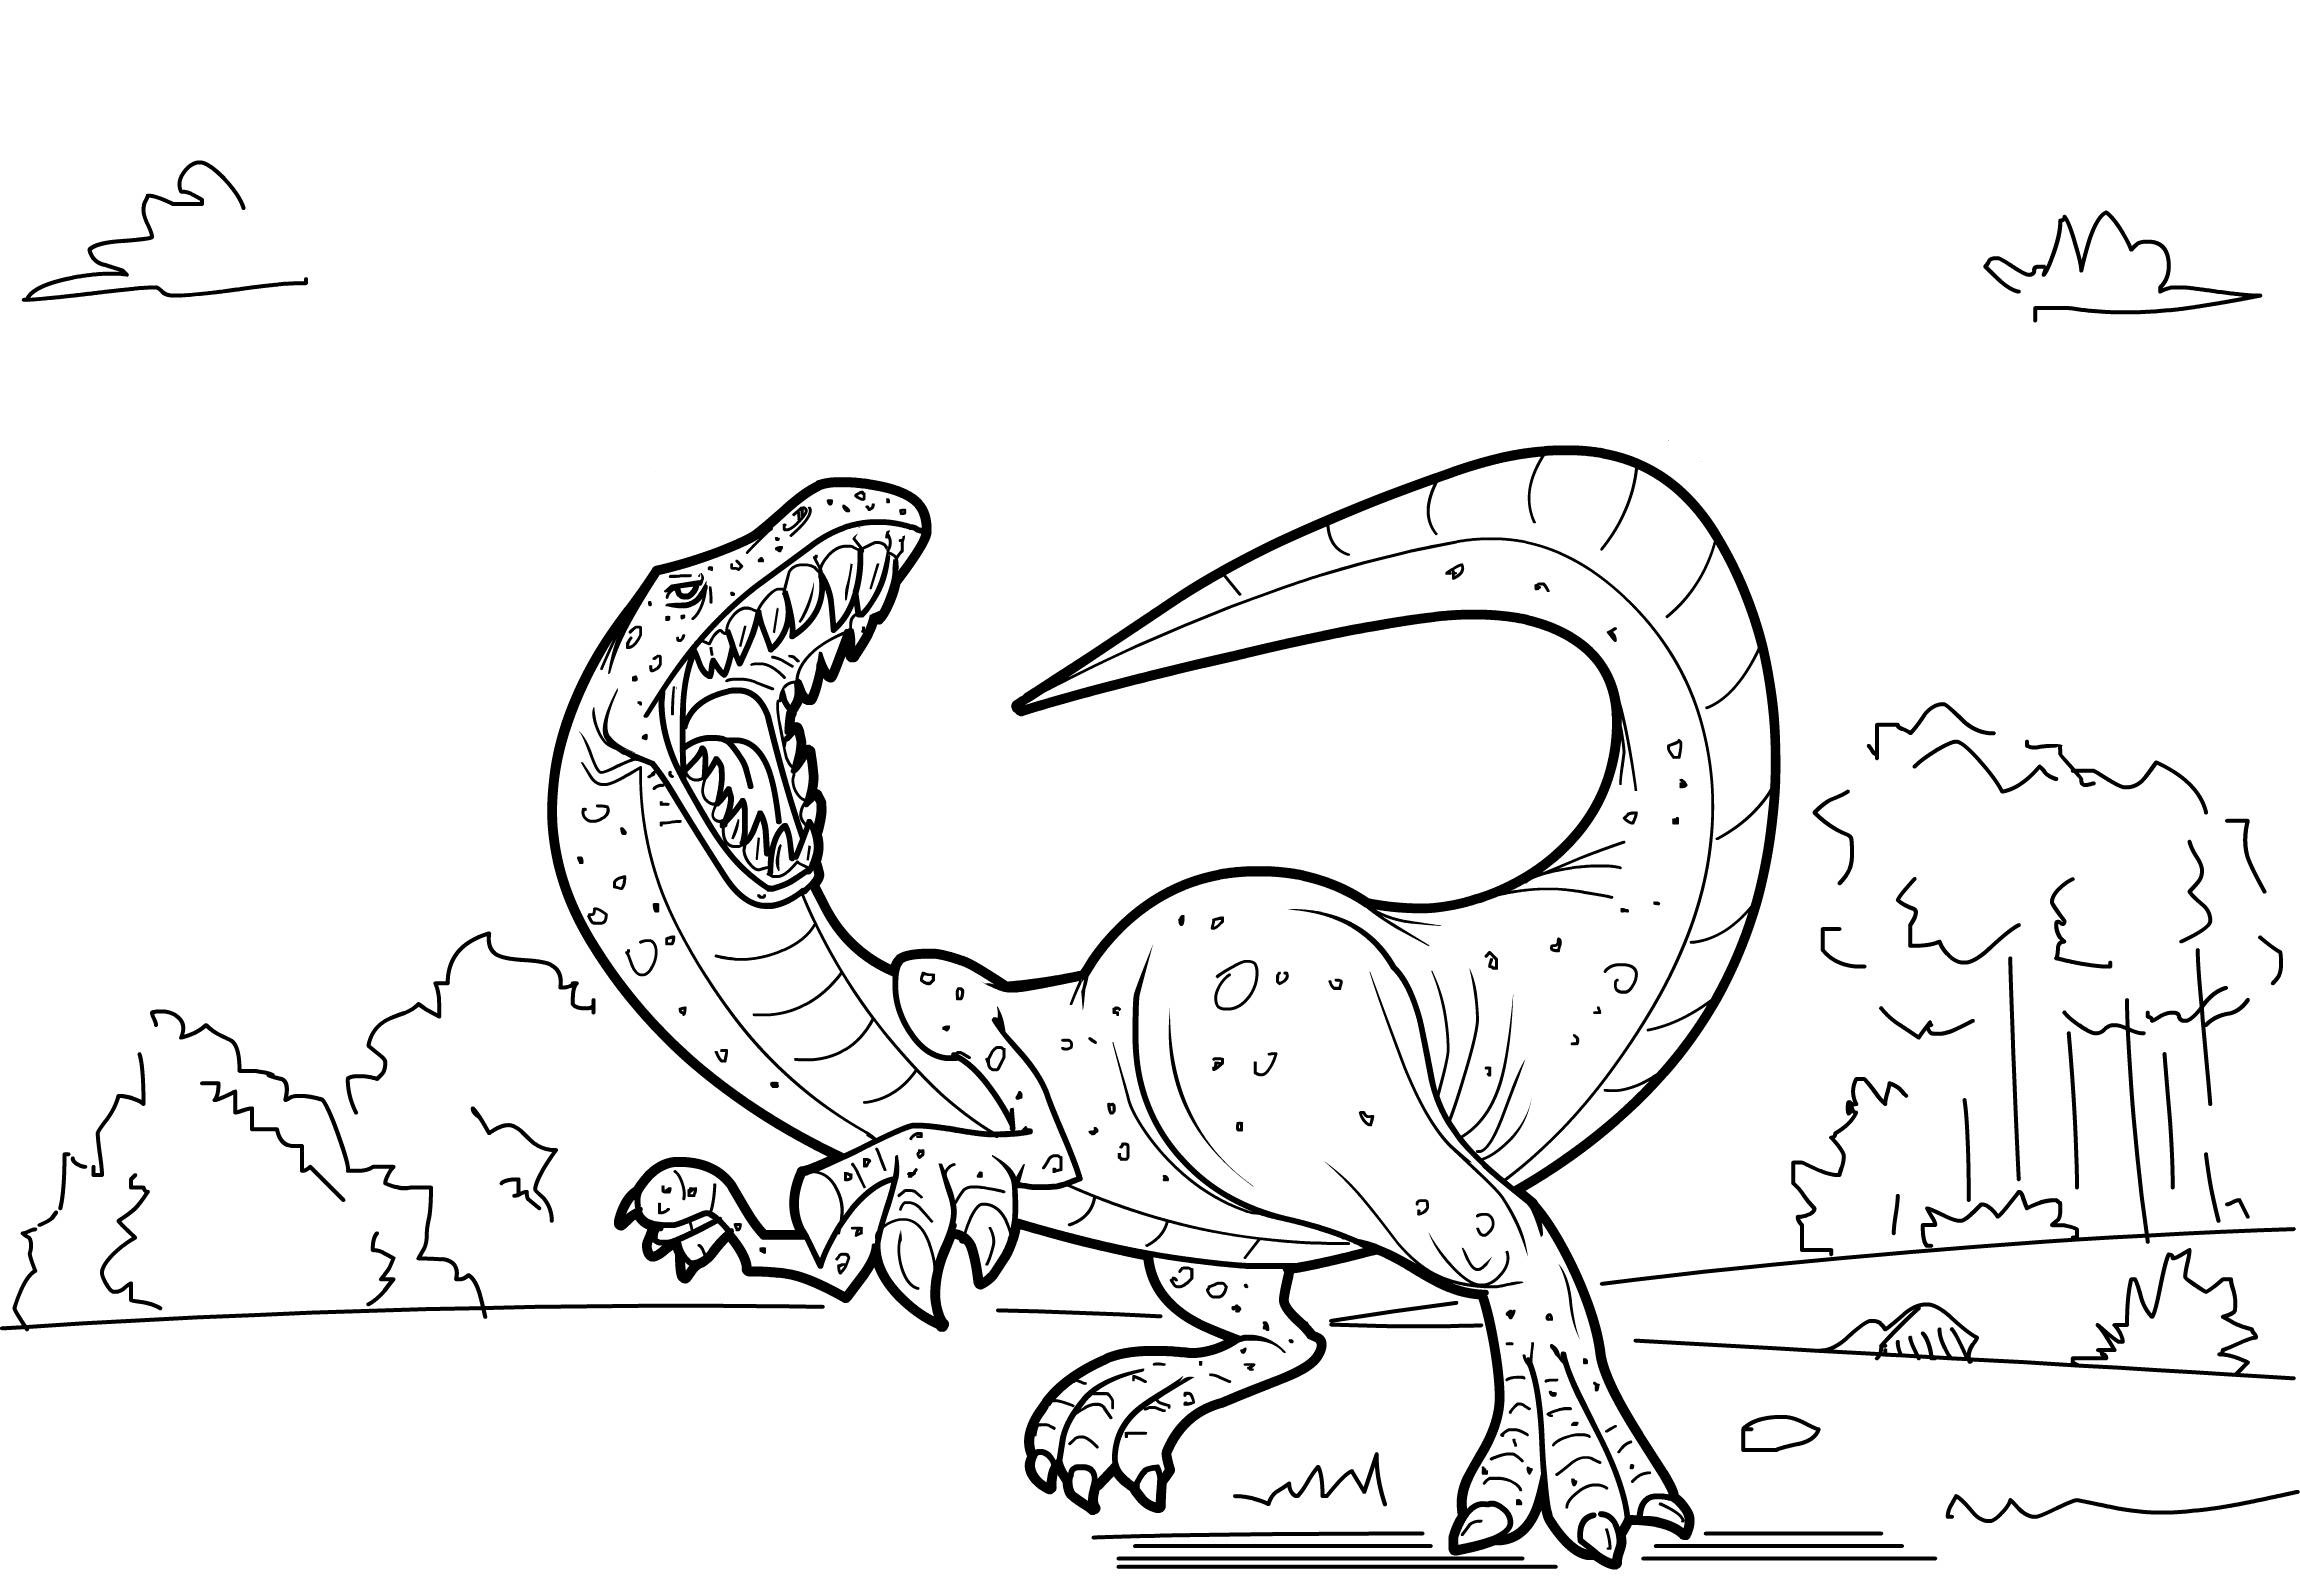 free printable dinosaur coloring pages - free printable dinosaur coloring pages